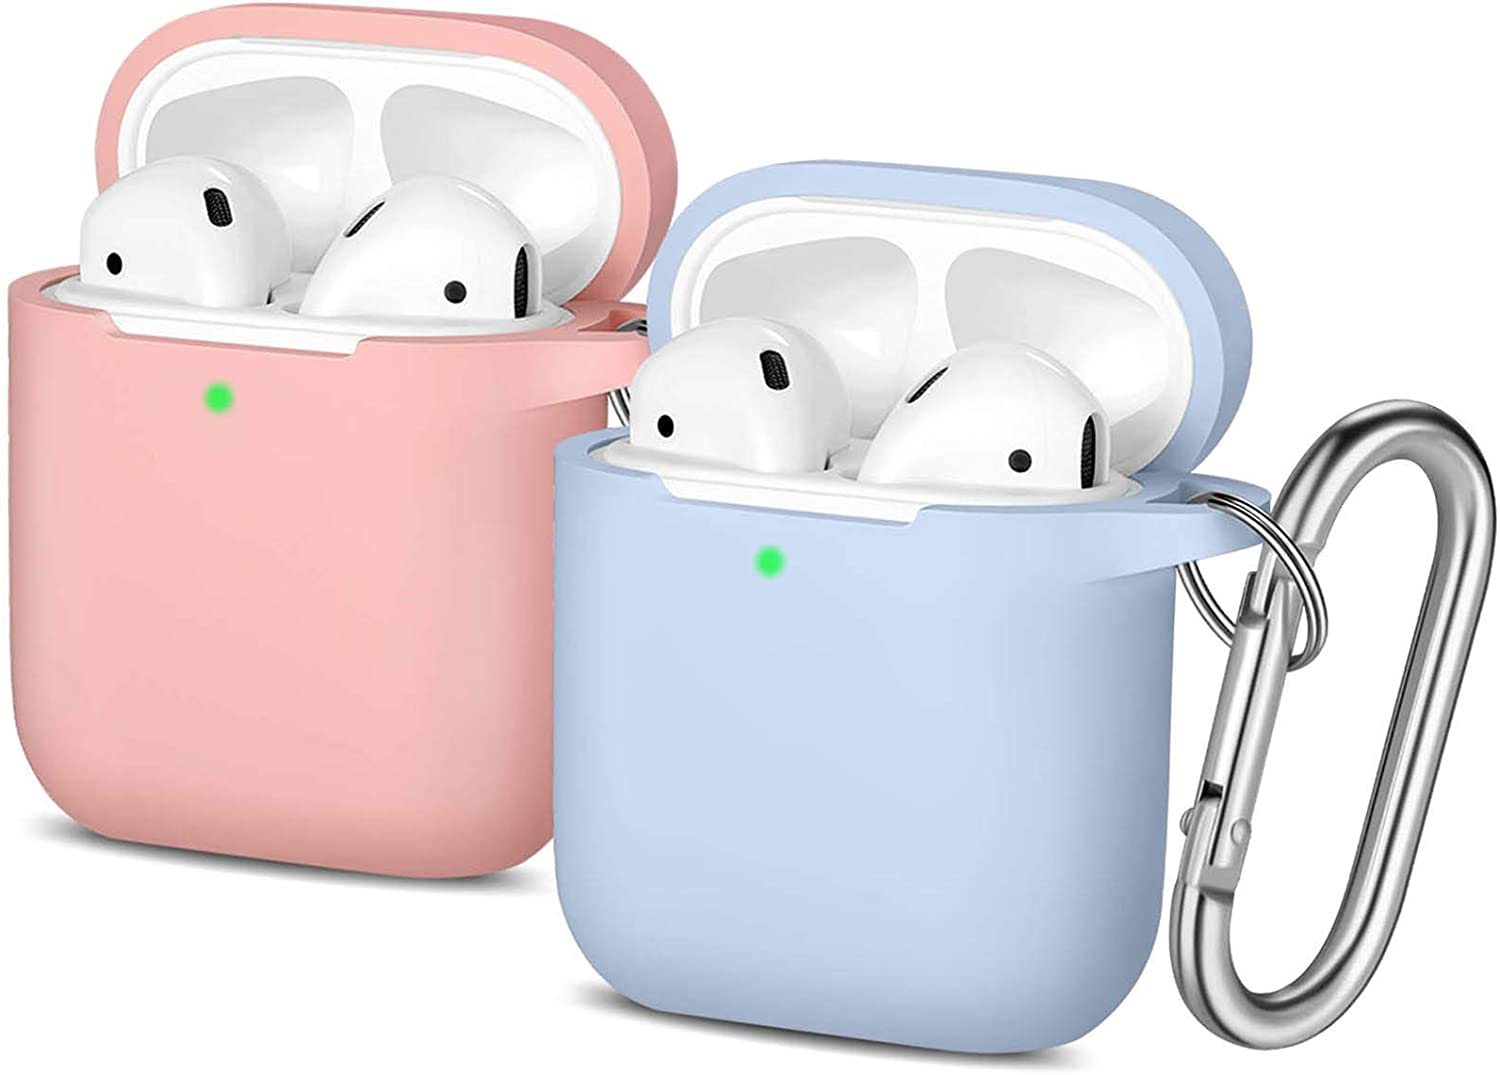 AirPods Case Keychain - 2 Pack Easuny Silicone Airpod Case Protective Cover Skin [Front LED Visible] with Keychain for Apple Air Pod 2 & 1 Wireless Charging Case Women Men, Lilac/Pink